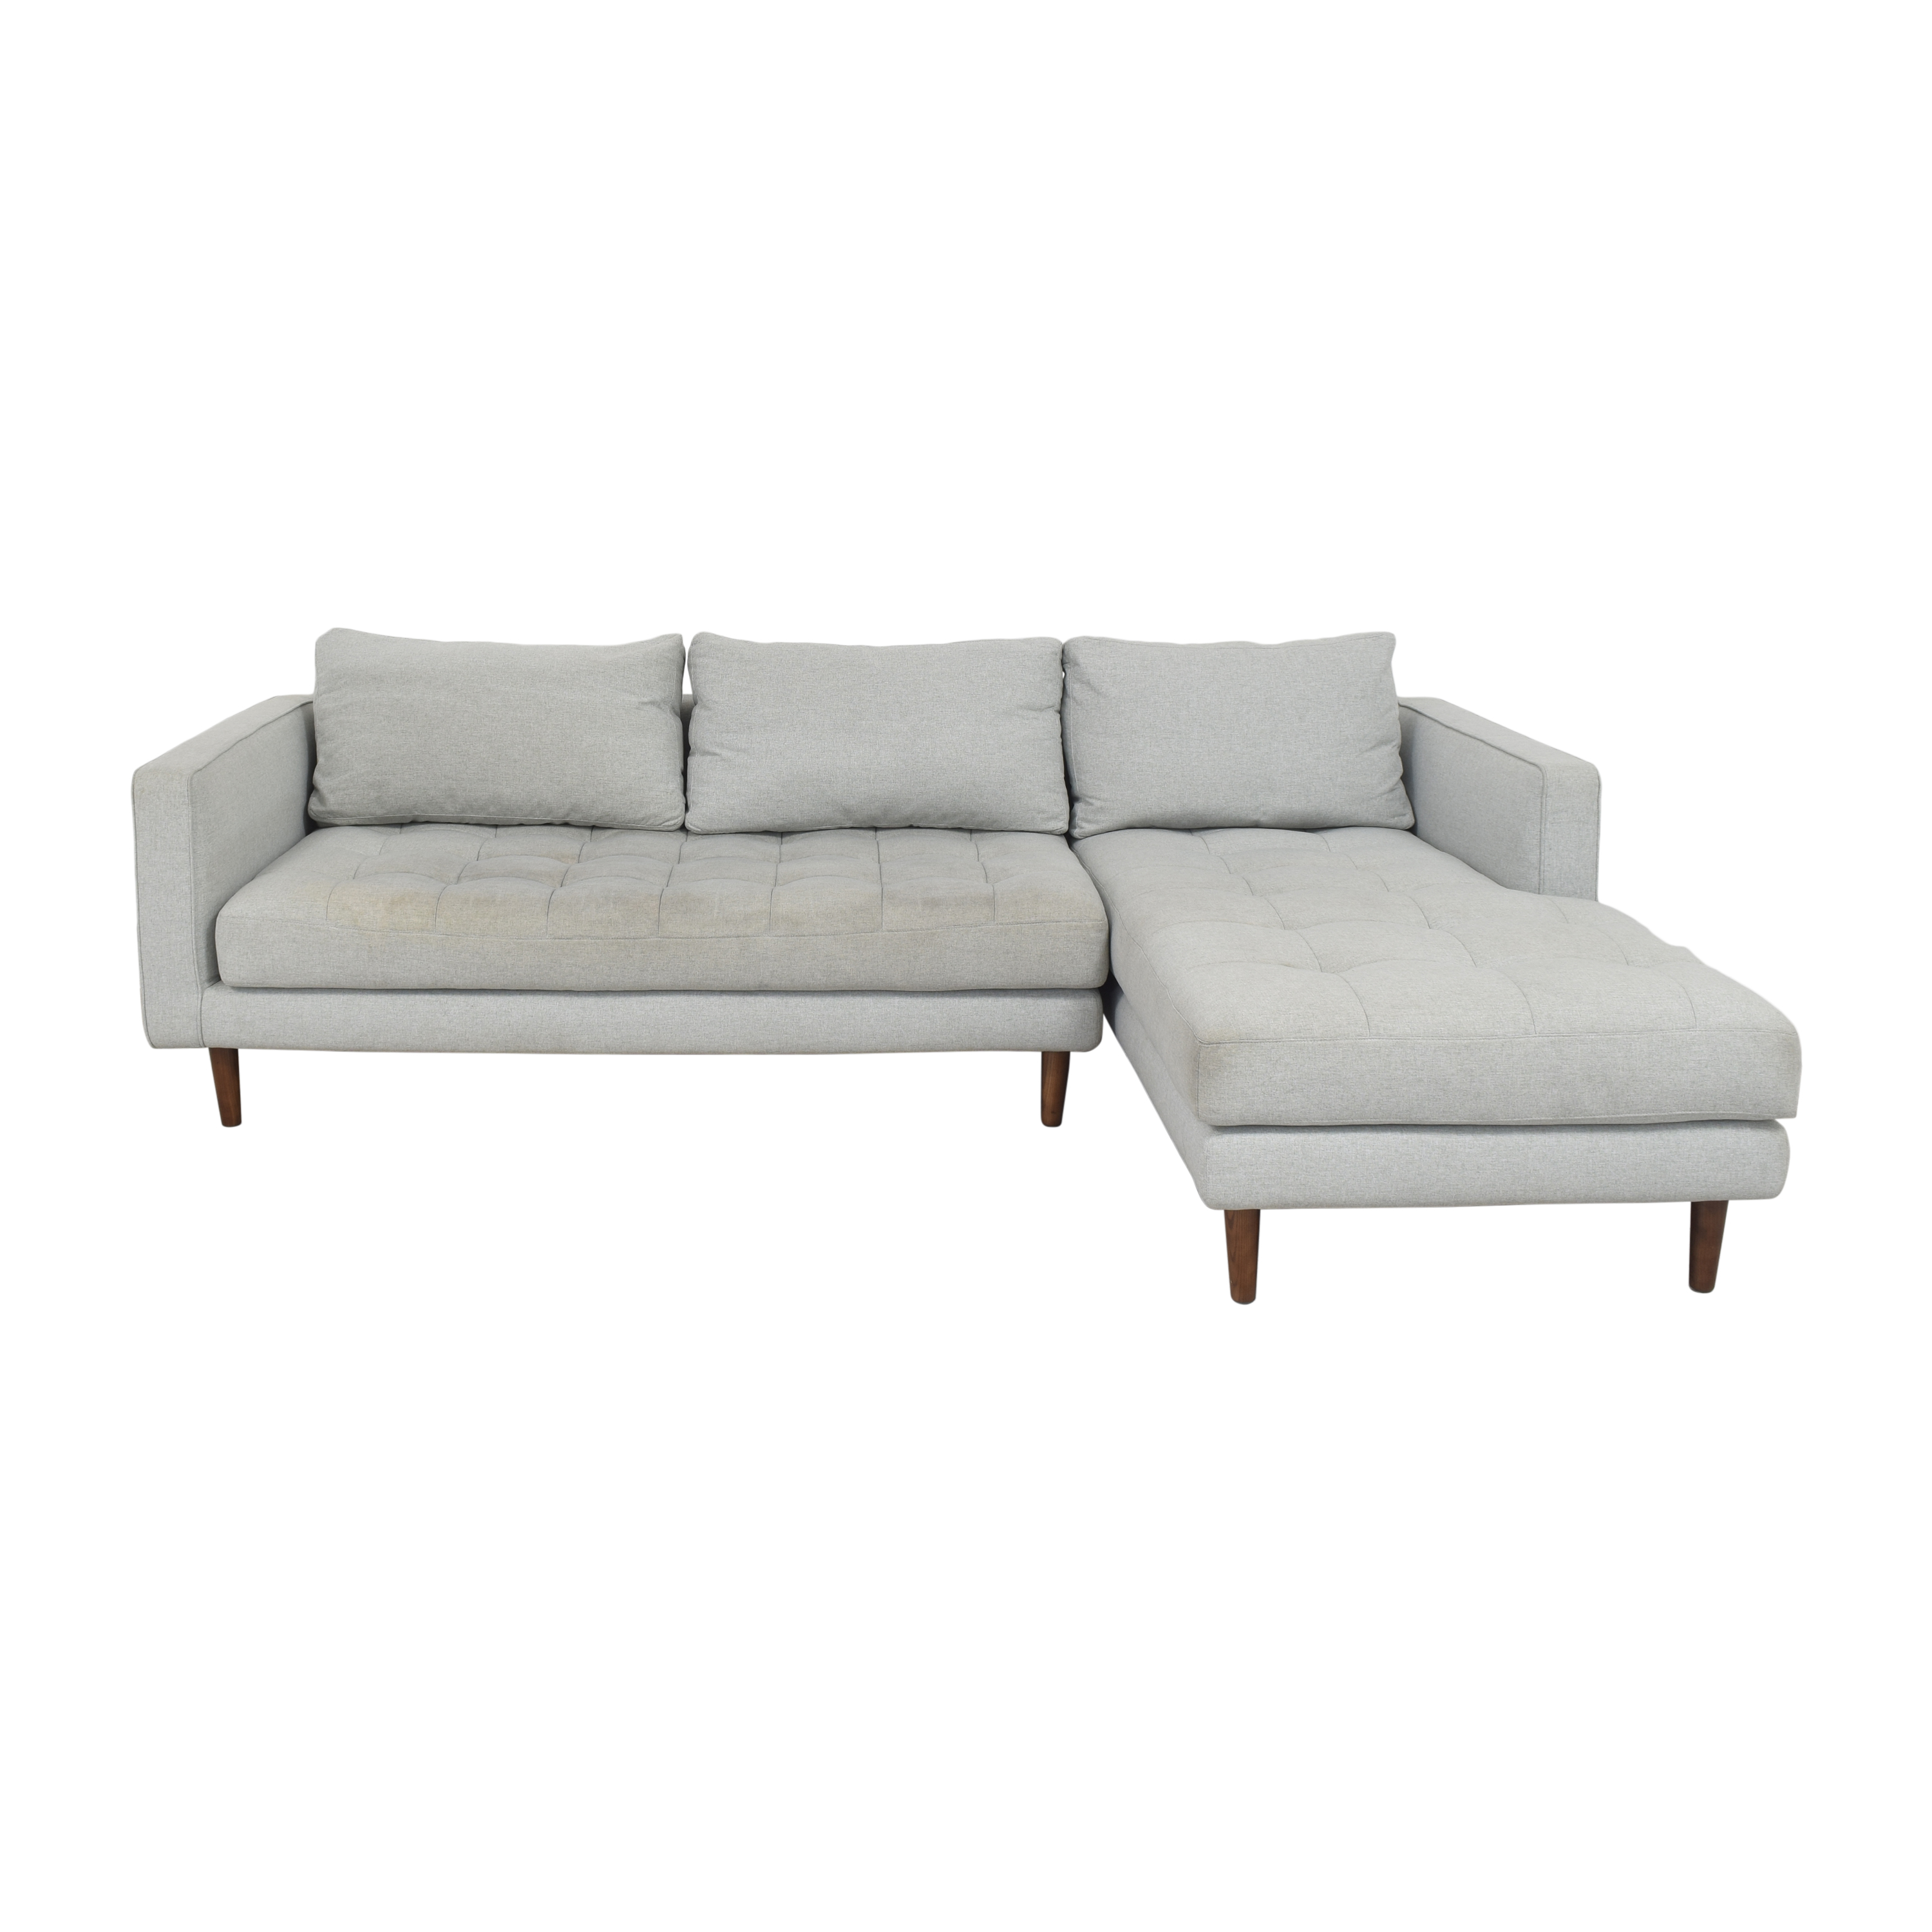 shop Rove Concepts Luca Sectional Sofa with Chaise Rove Concepts